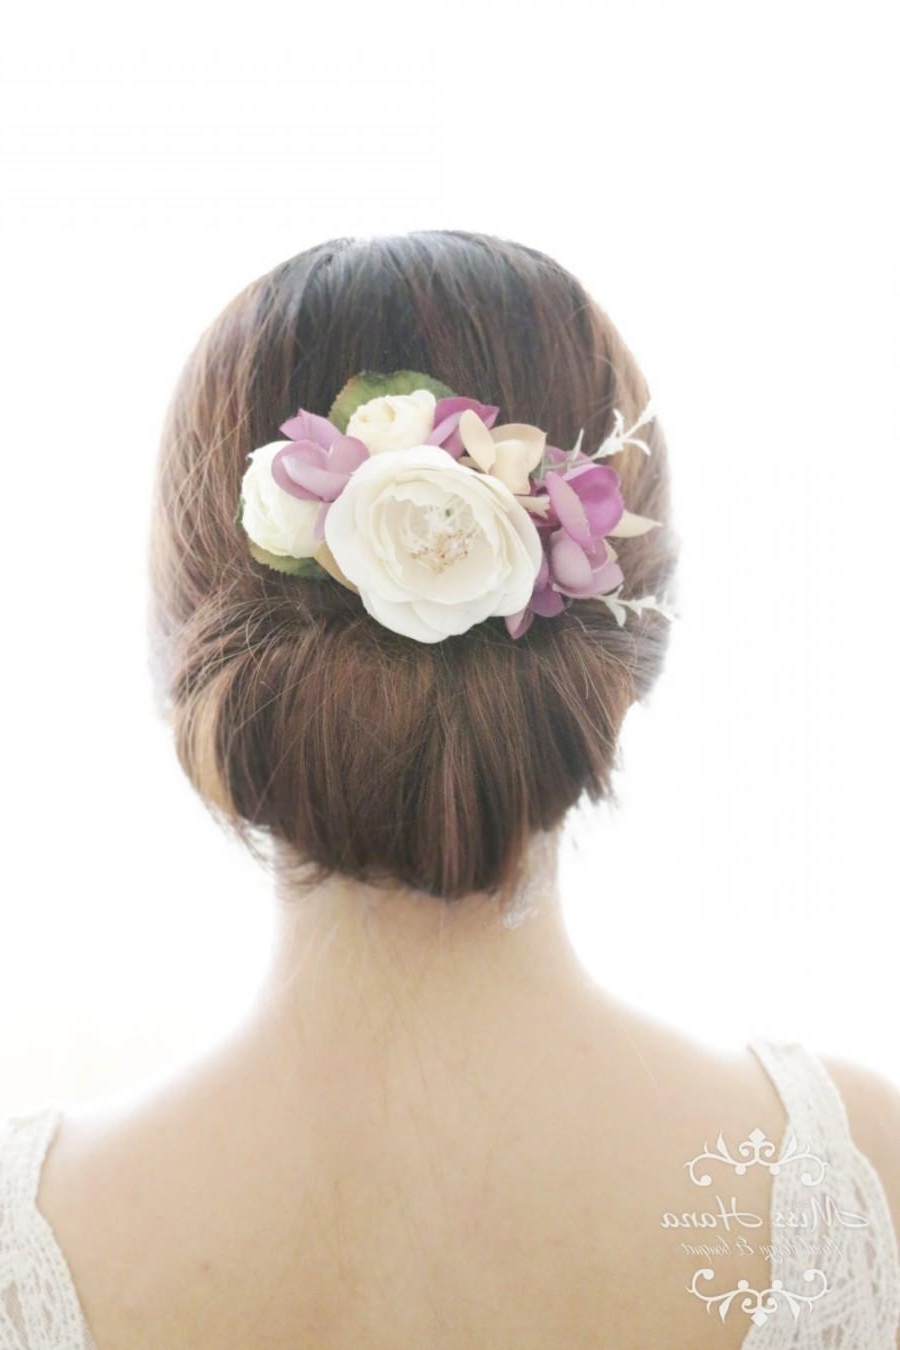 Favorite Outdoor Wedding Hairstyles For Bridesmaids Intended For Bridal Hair Accessory, White Camellia Purple Hydrangea, Bridal Hair (View 12 of 15)